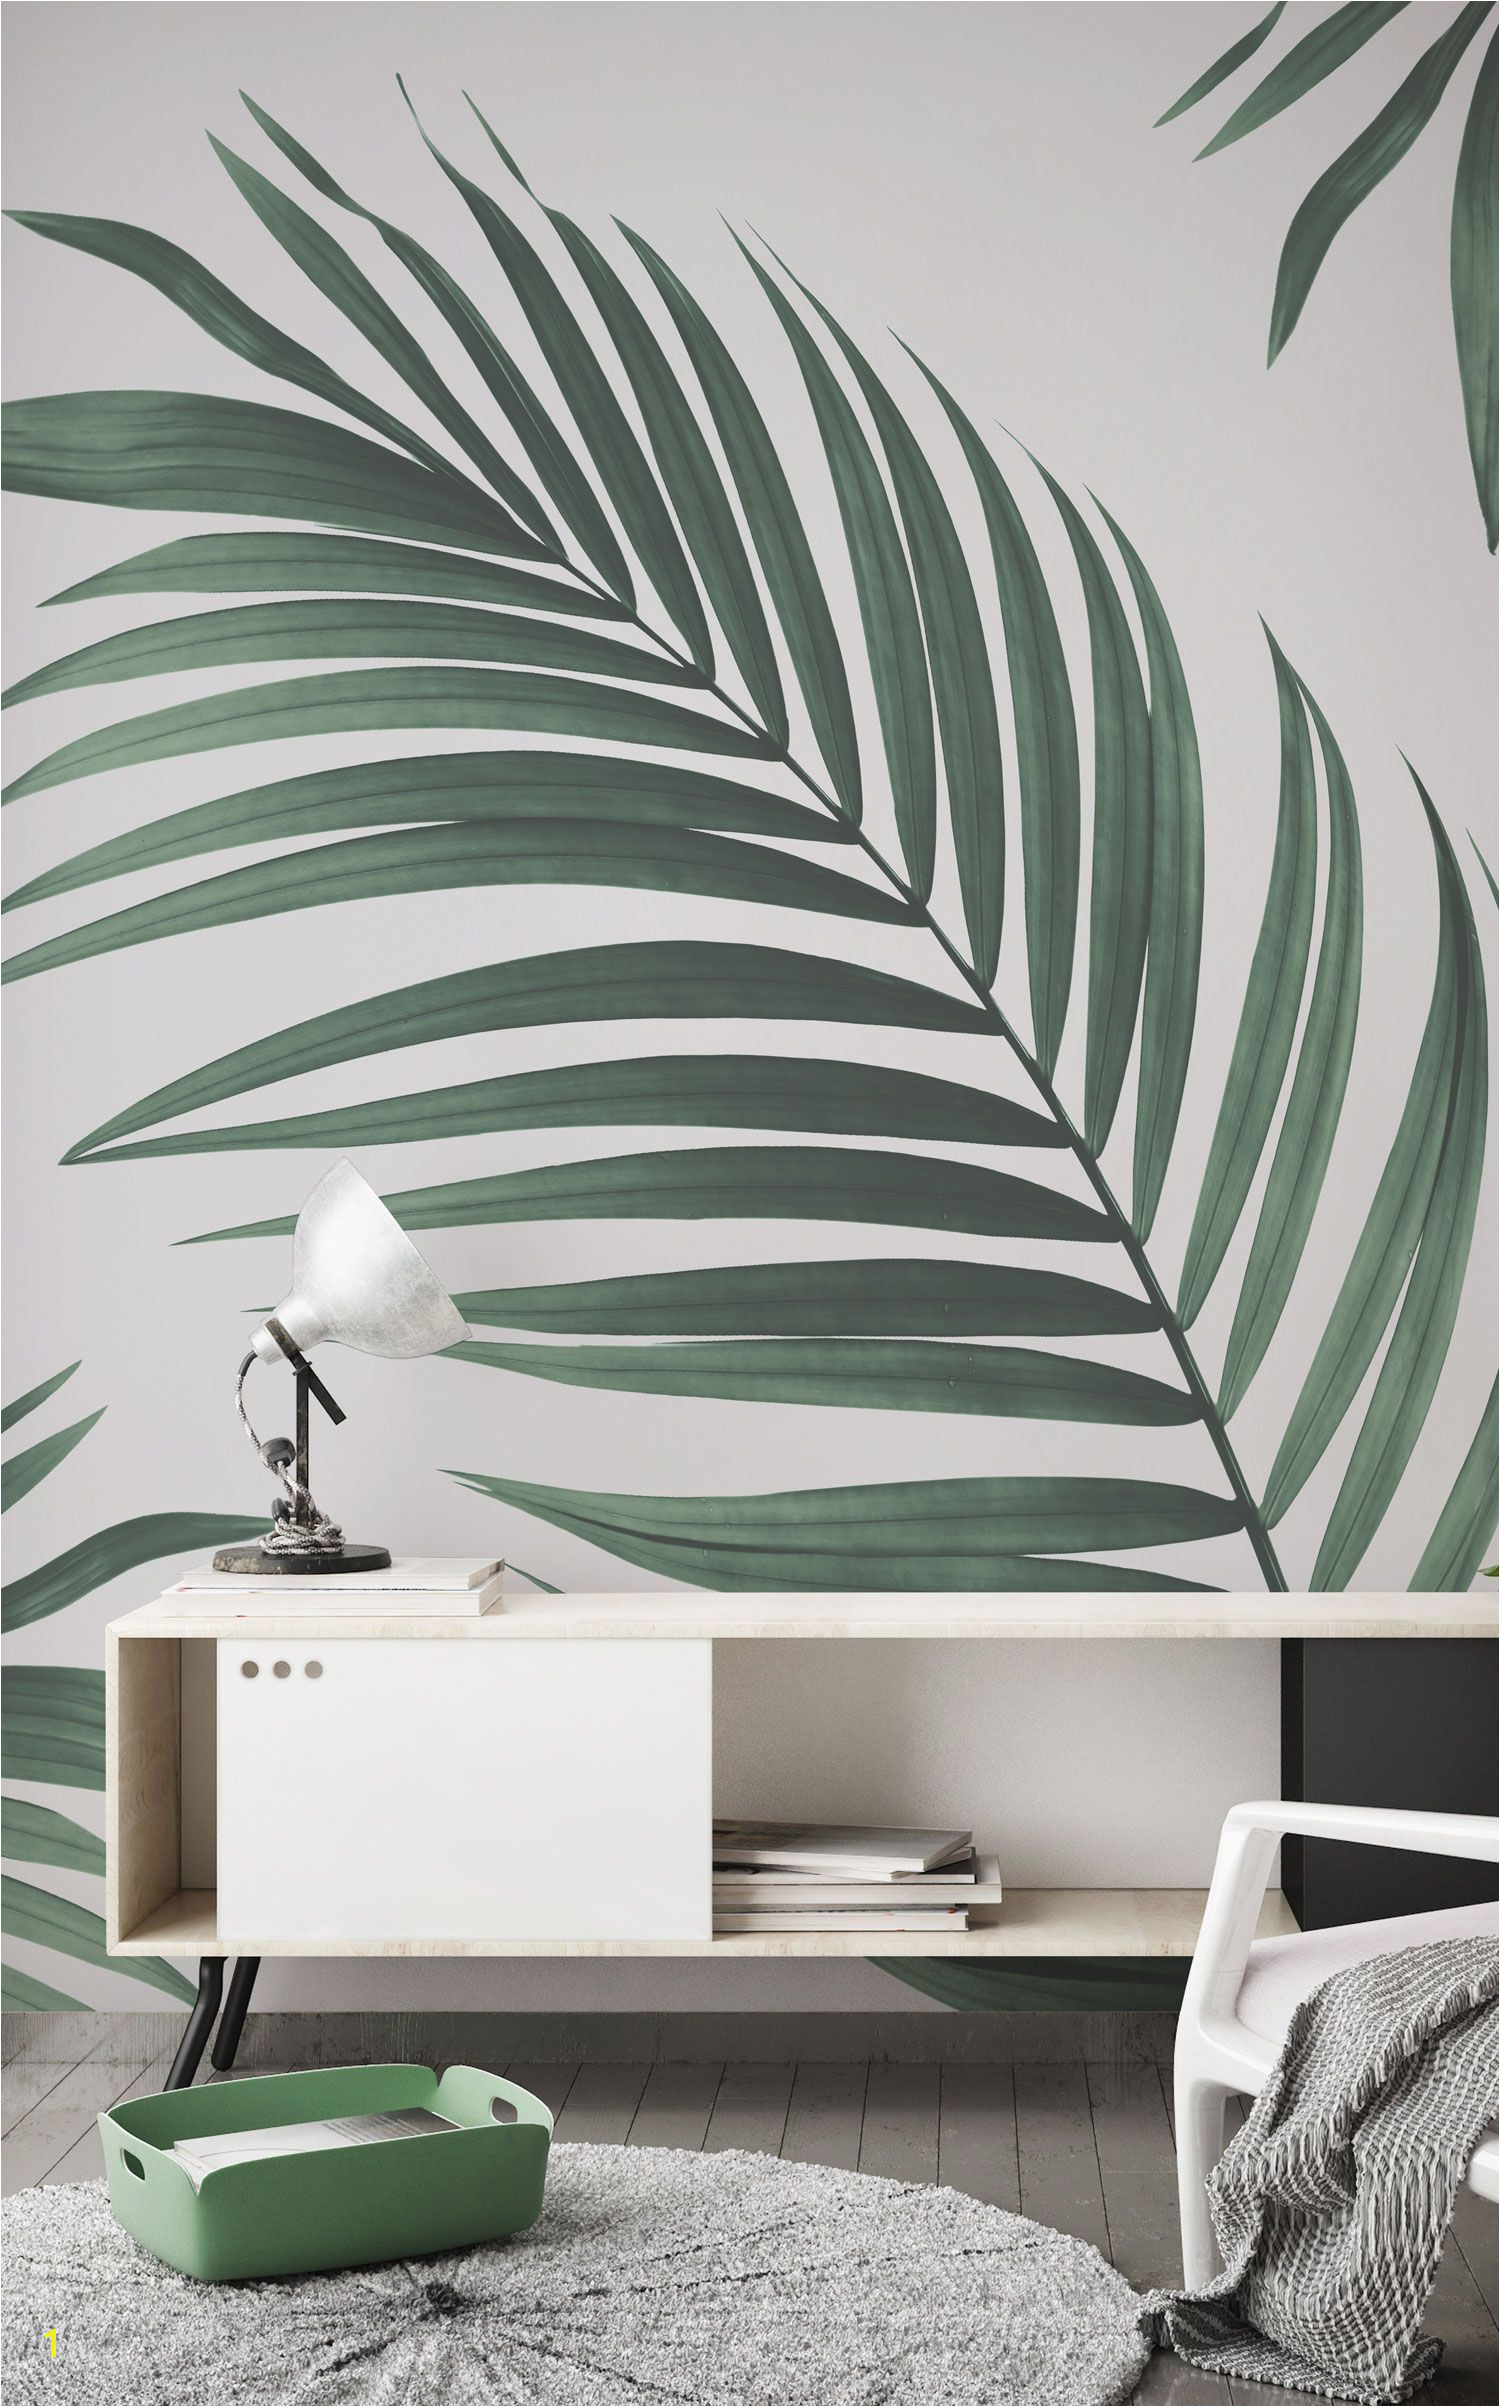 Falling in love with greenery This jungle wallpaper is another great way to incorporate life into your home Lovely faded green tones of the palm against a